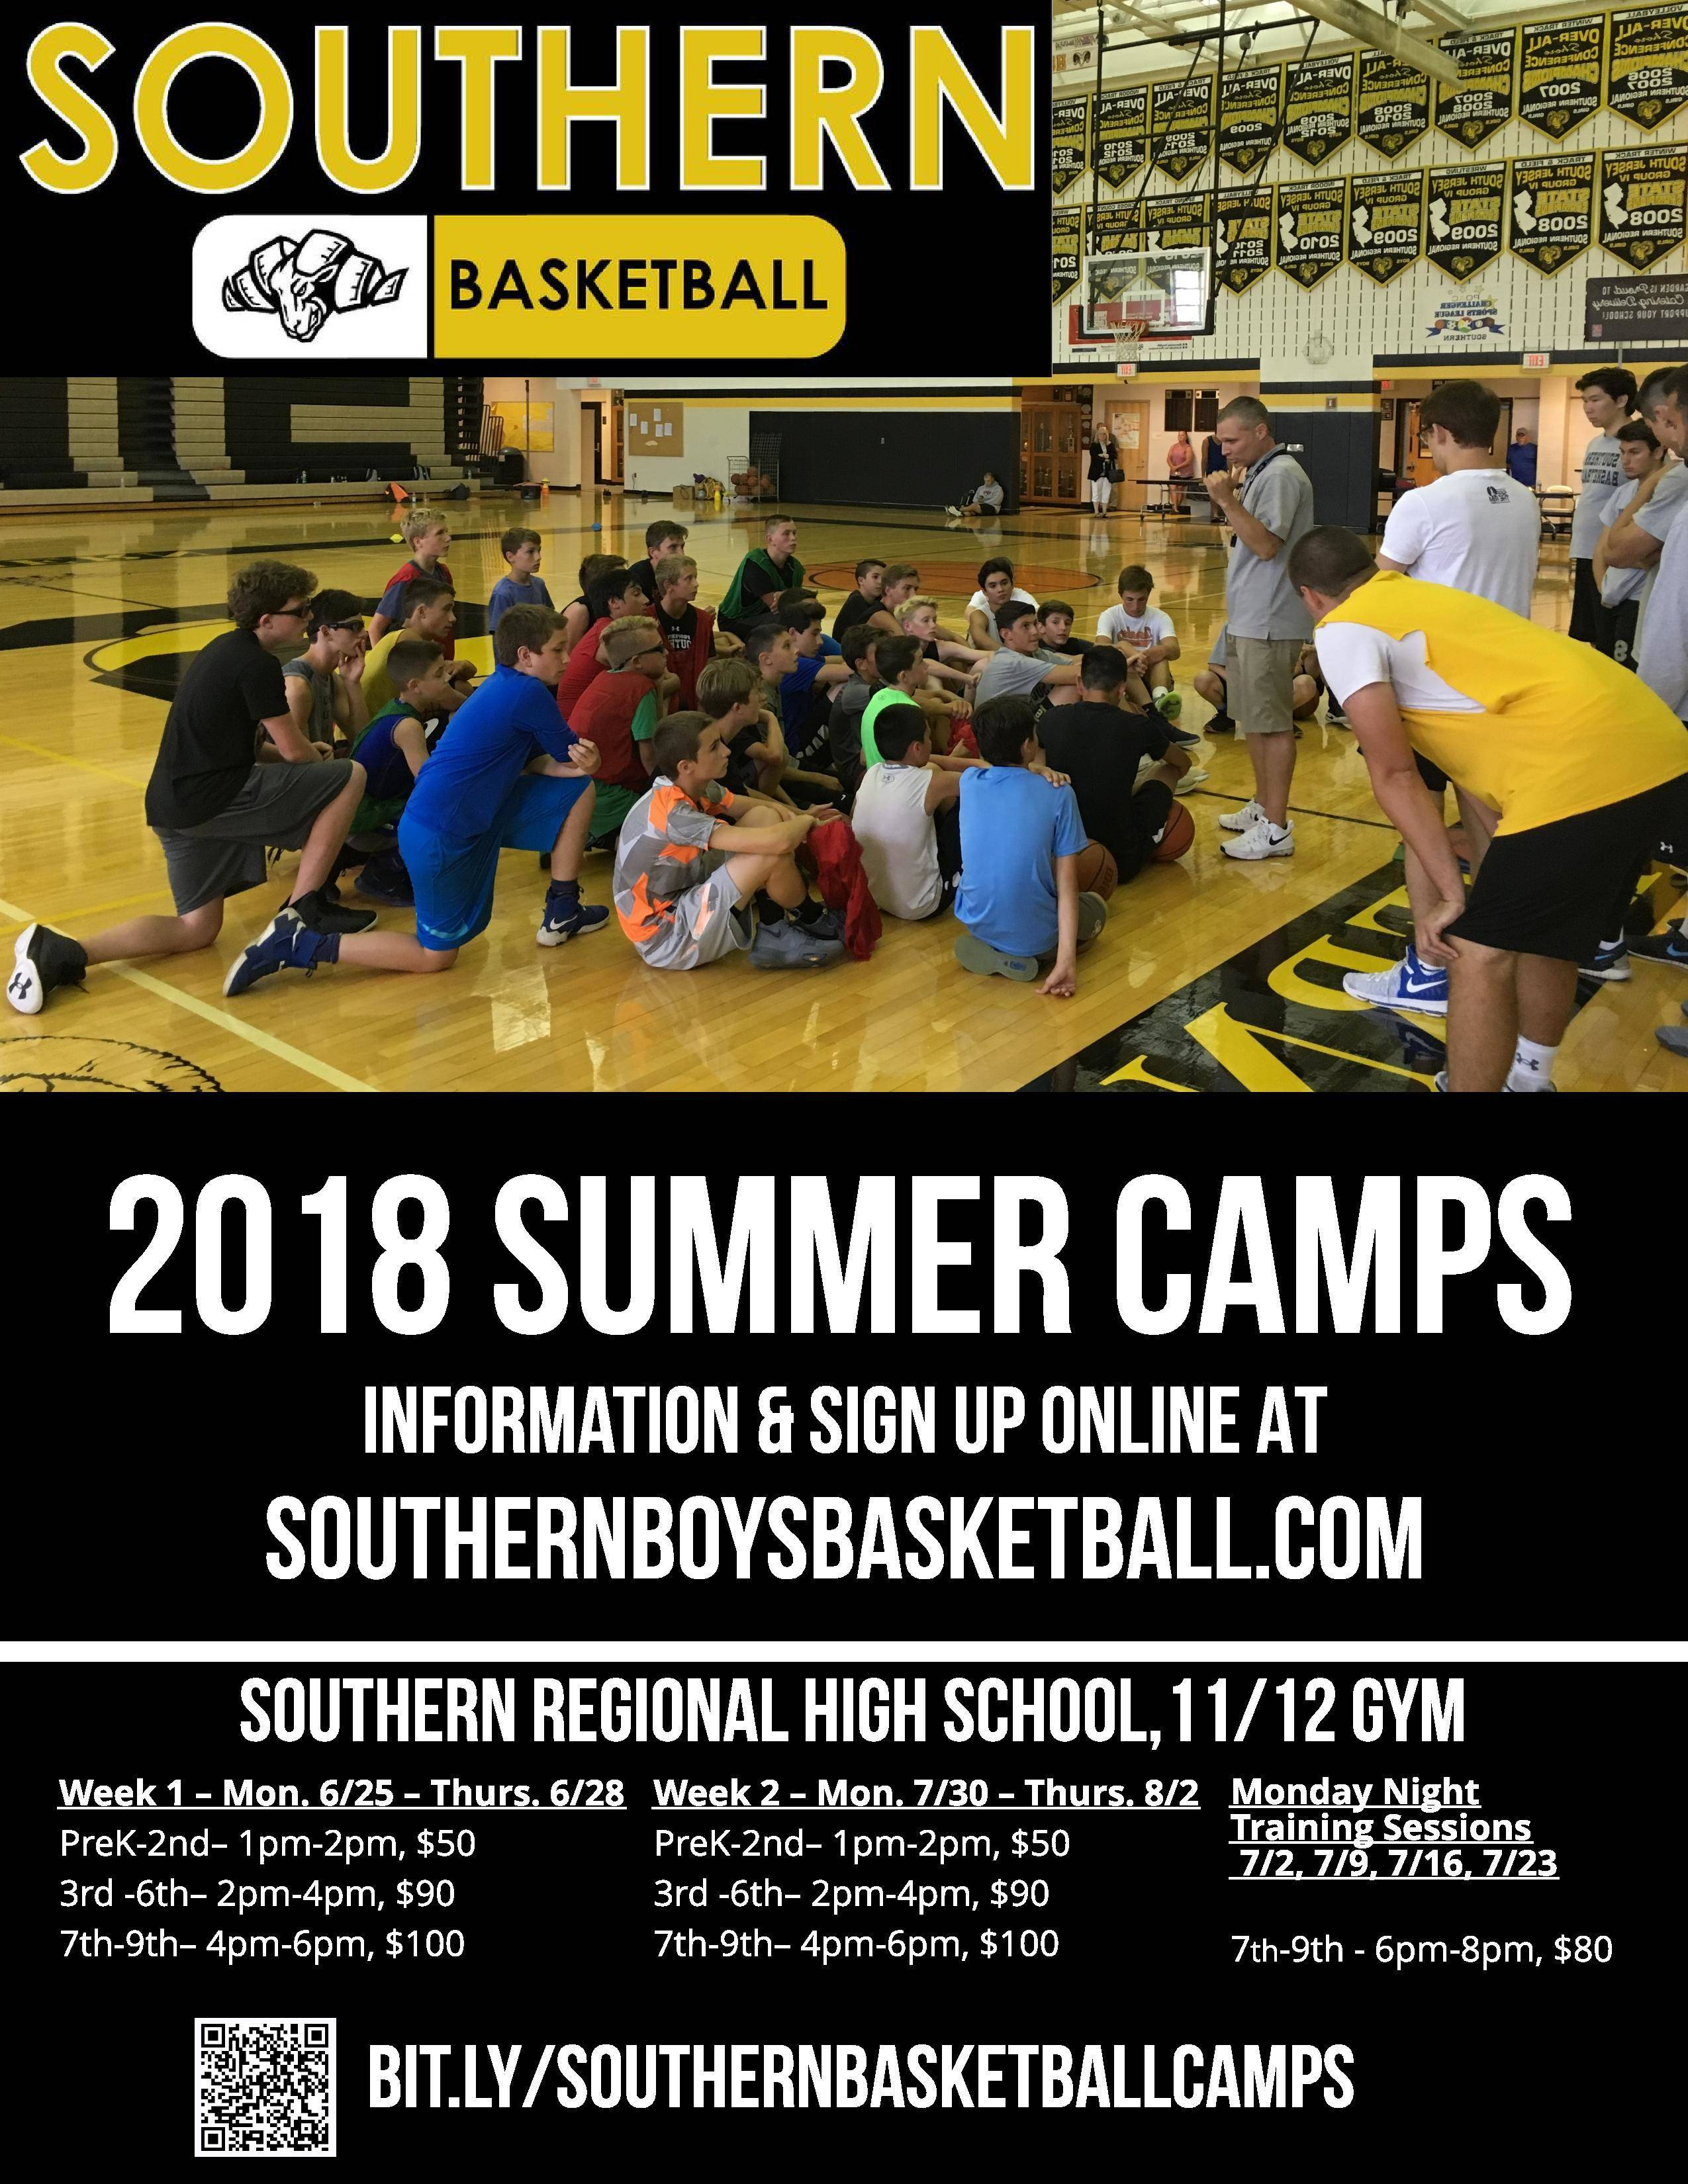 1db7680948fb641b5d94_2018_Southern_Boys_Basketball_Camps_w_Dates__1___1_.jpg